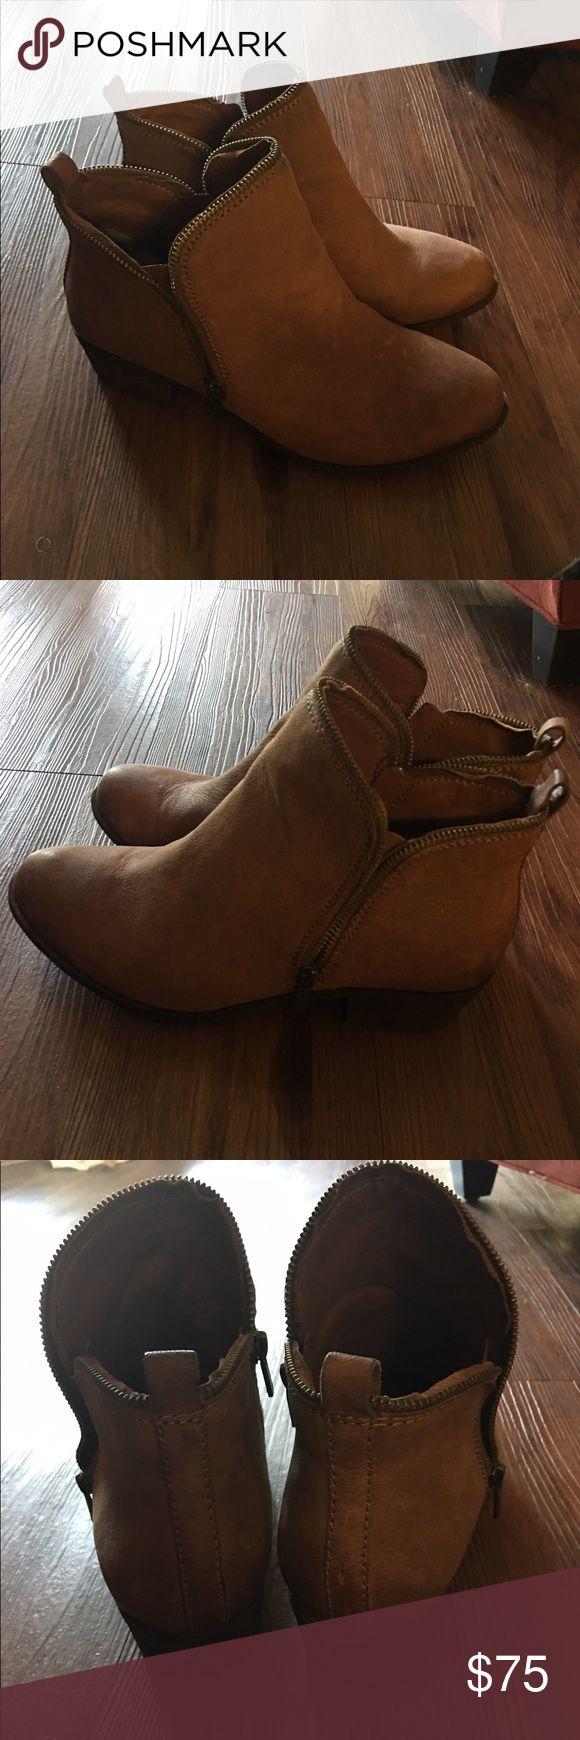 Lucky Brand Basel booties The perfect booties. Double zip on each shoe. Goes great with dresses or jeans. So comfortable! Lucky Brand Shoes Ankle Boots & Booties